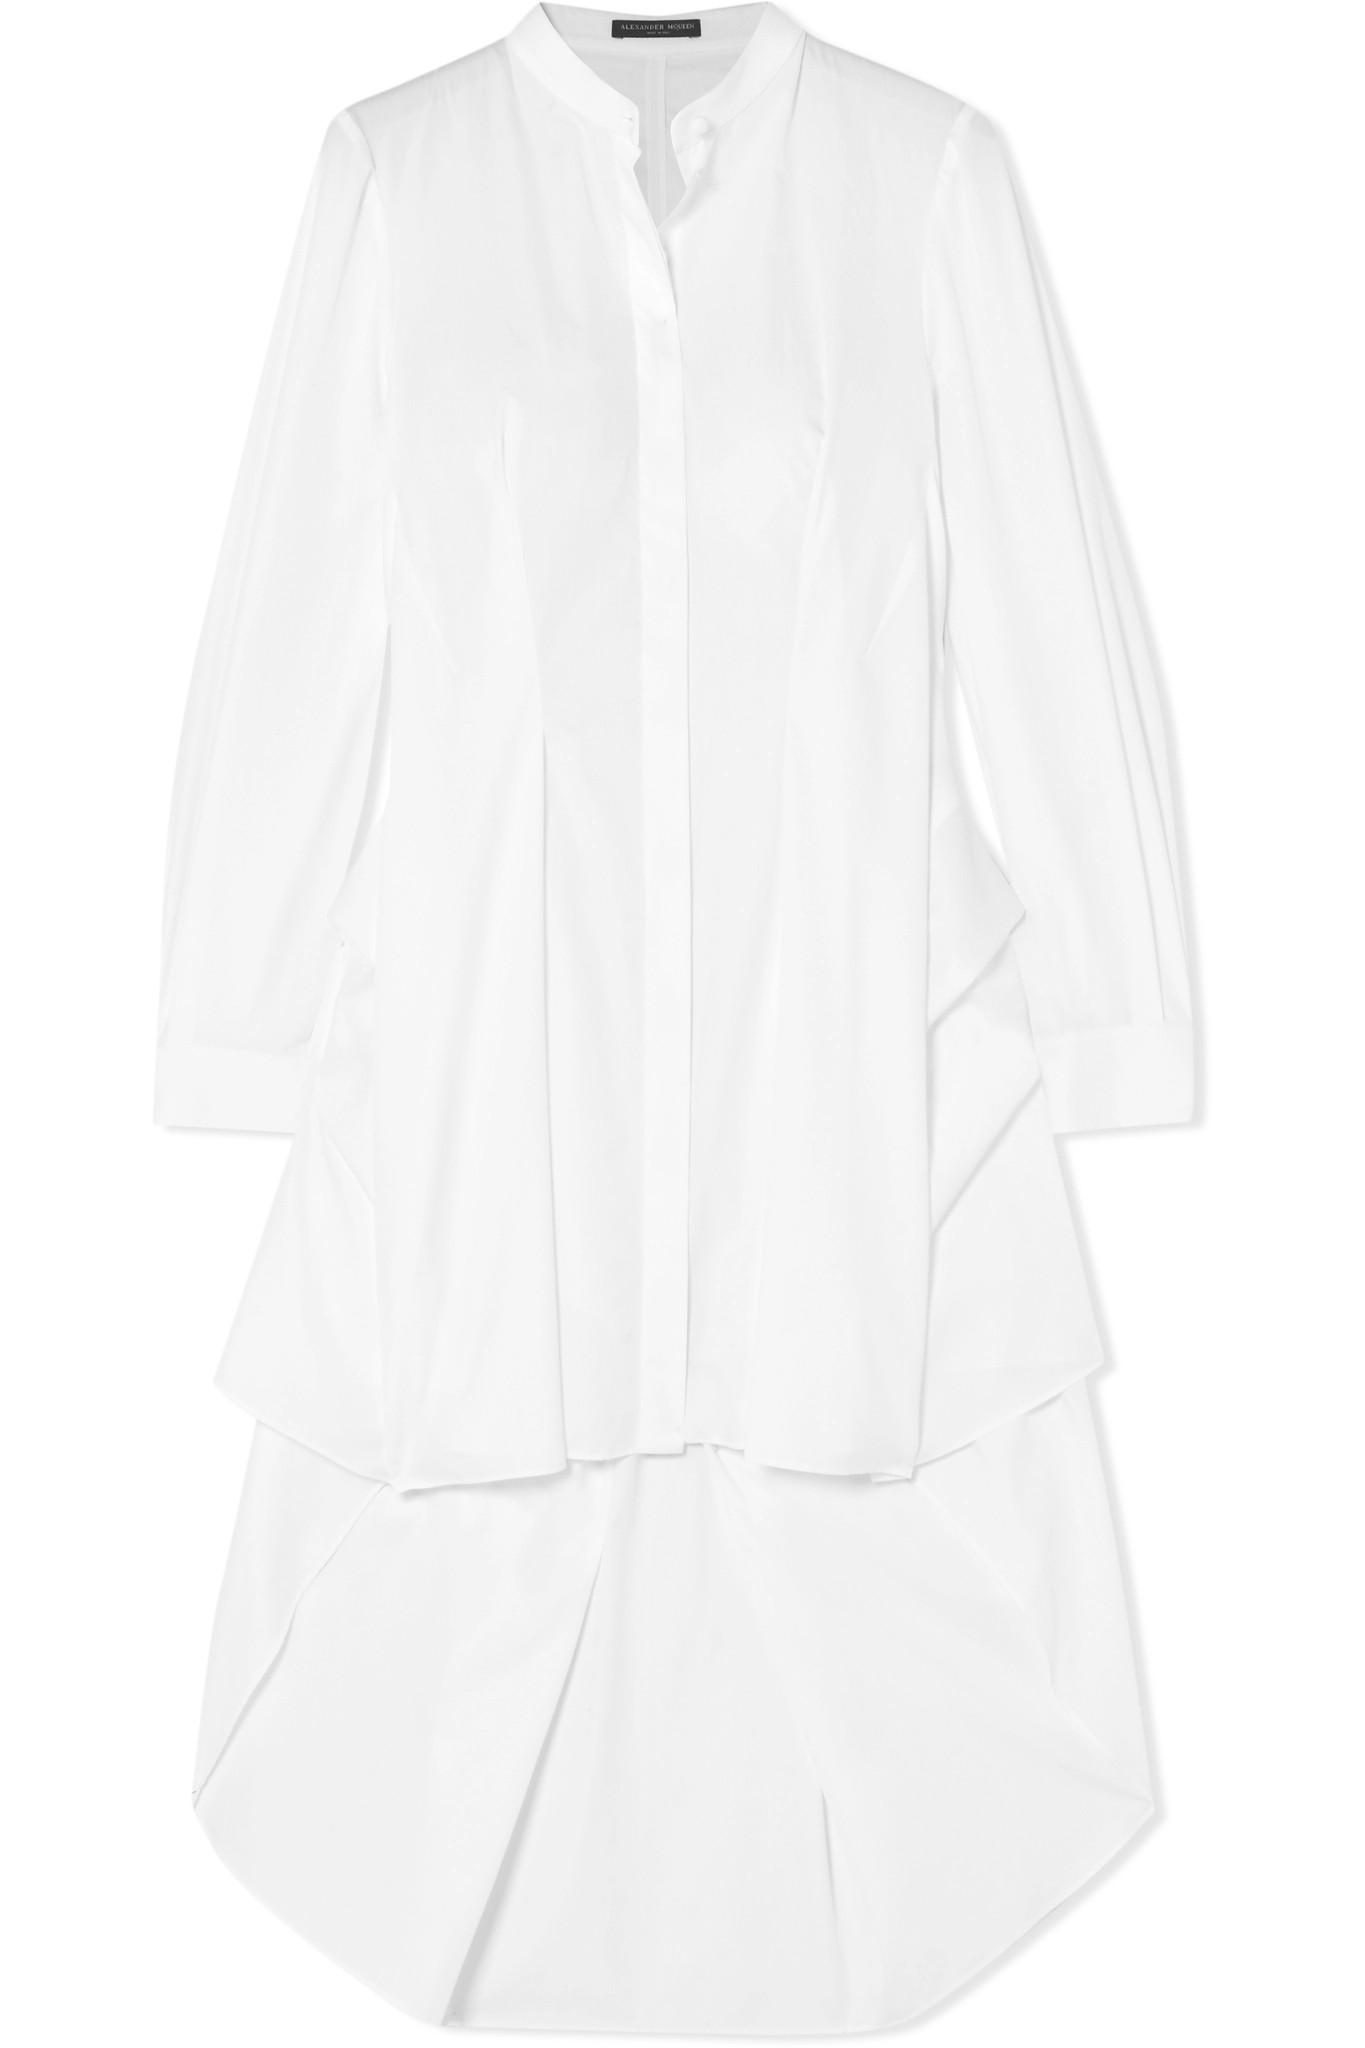 Discounts Draped Cotton-poplin Shirt - White Alexander McQueen Buy Cheap Low Cost Release Dates For Sale UFAOMyz1Q